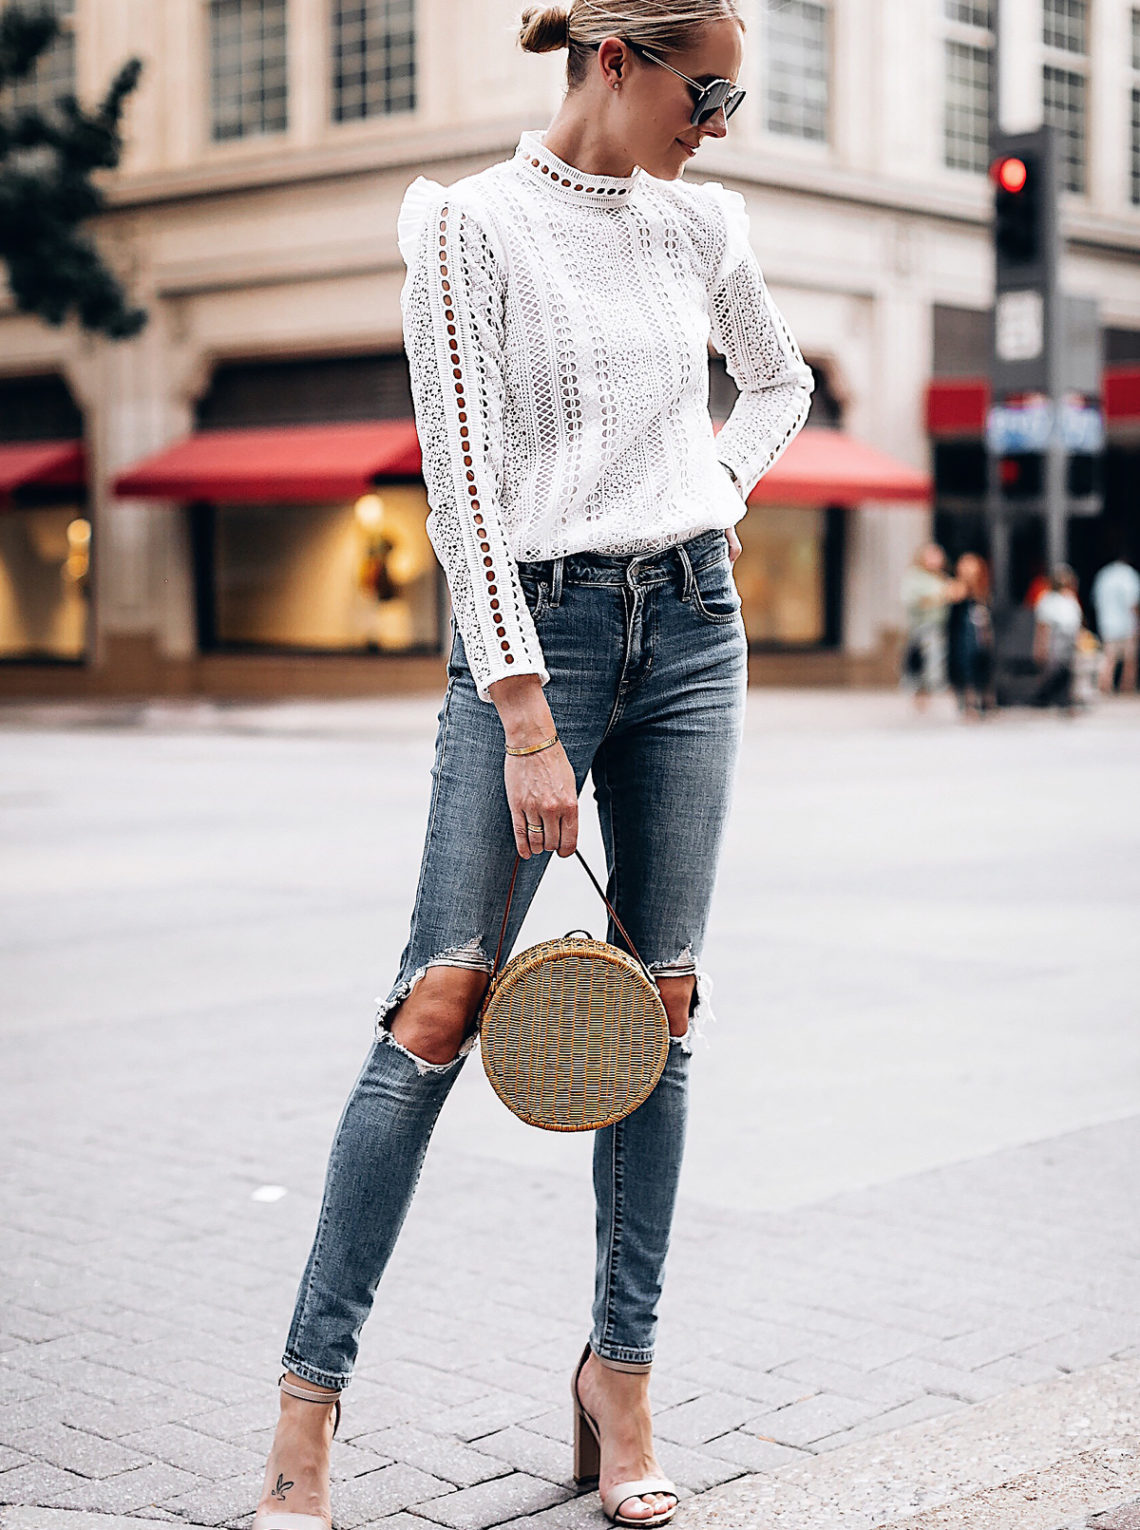 Blonde Woman Wearing Fashion Jackson Bloomingdales AQUA White Lace Ruffle Top Levis 721 Skinny Jeans Tan Ankle Strap Heeled Sandals Serpui Straw Circle Handbag Fashion Jackson San Diego Fashion Blogger Street Style